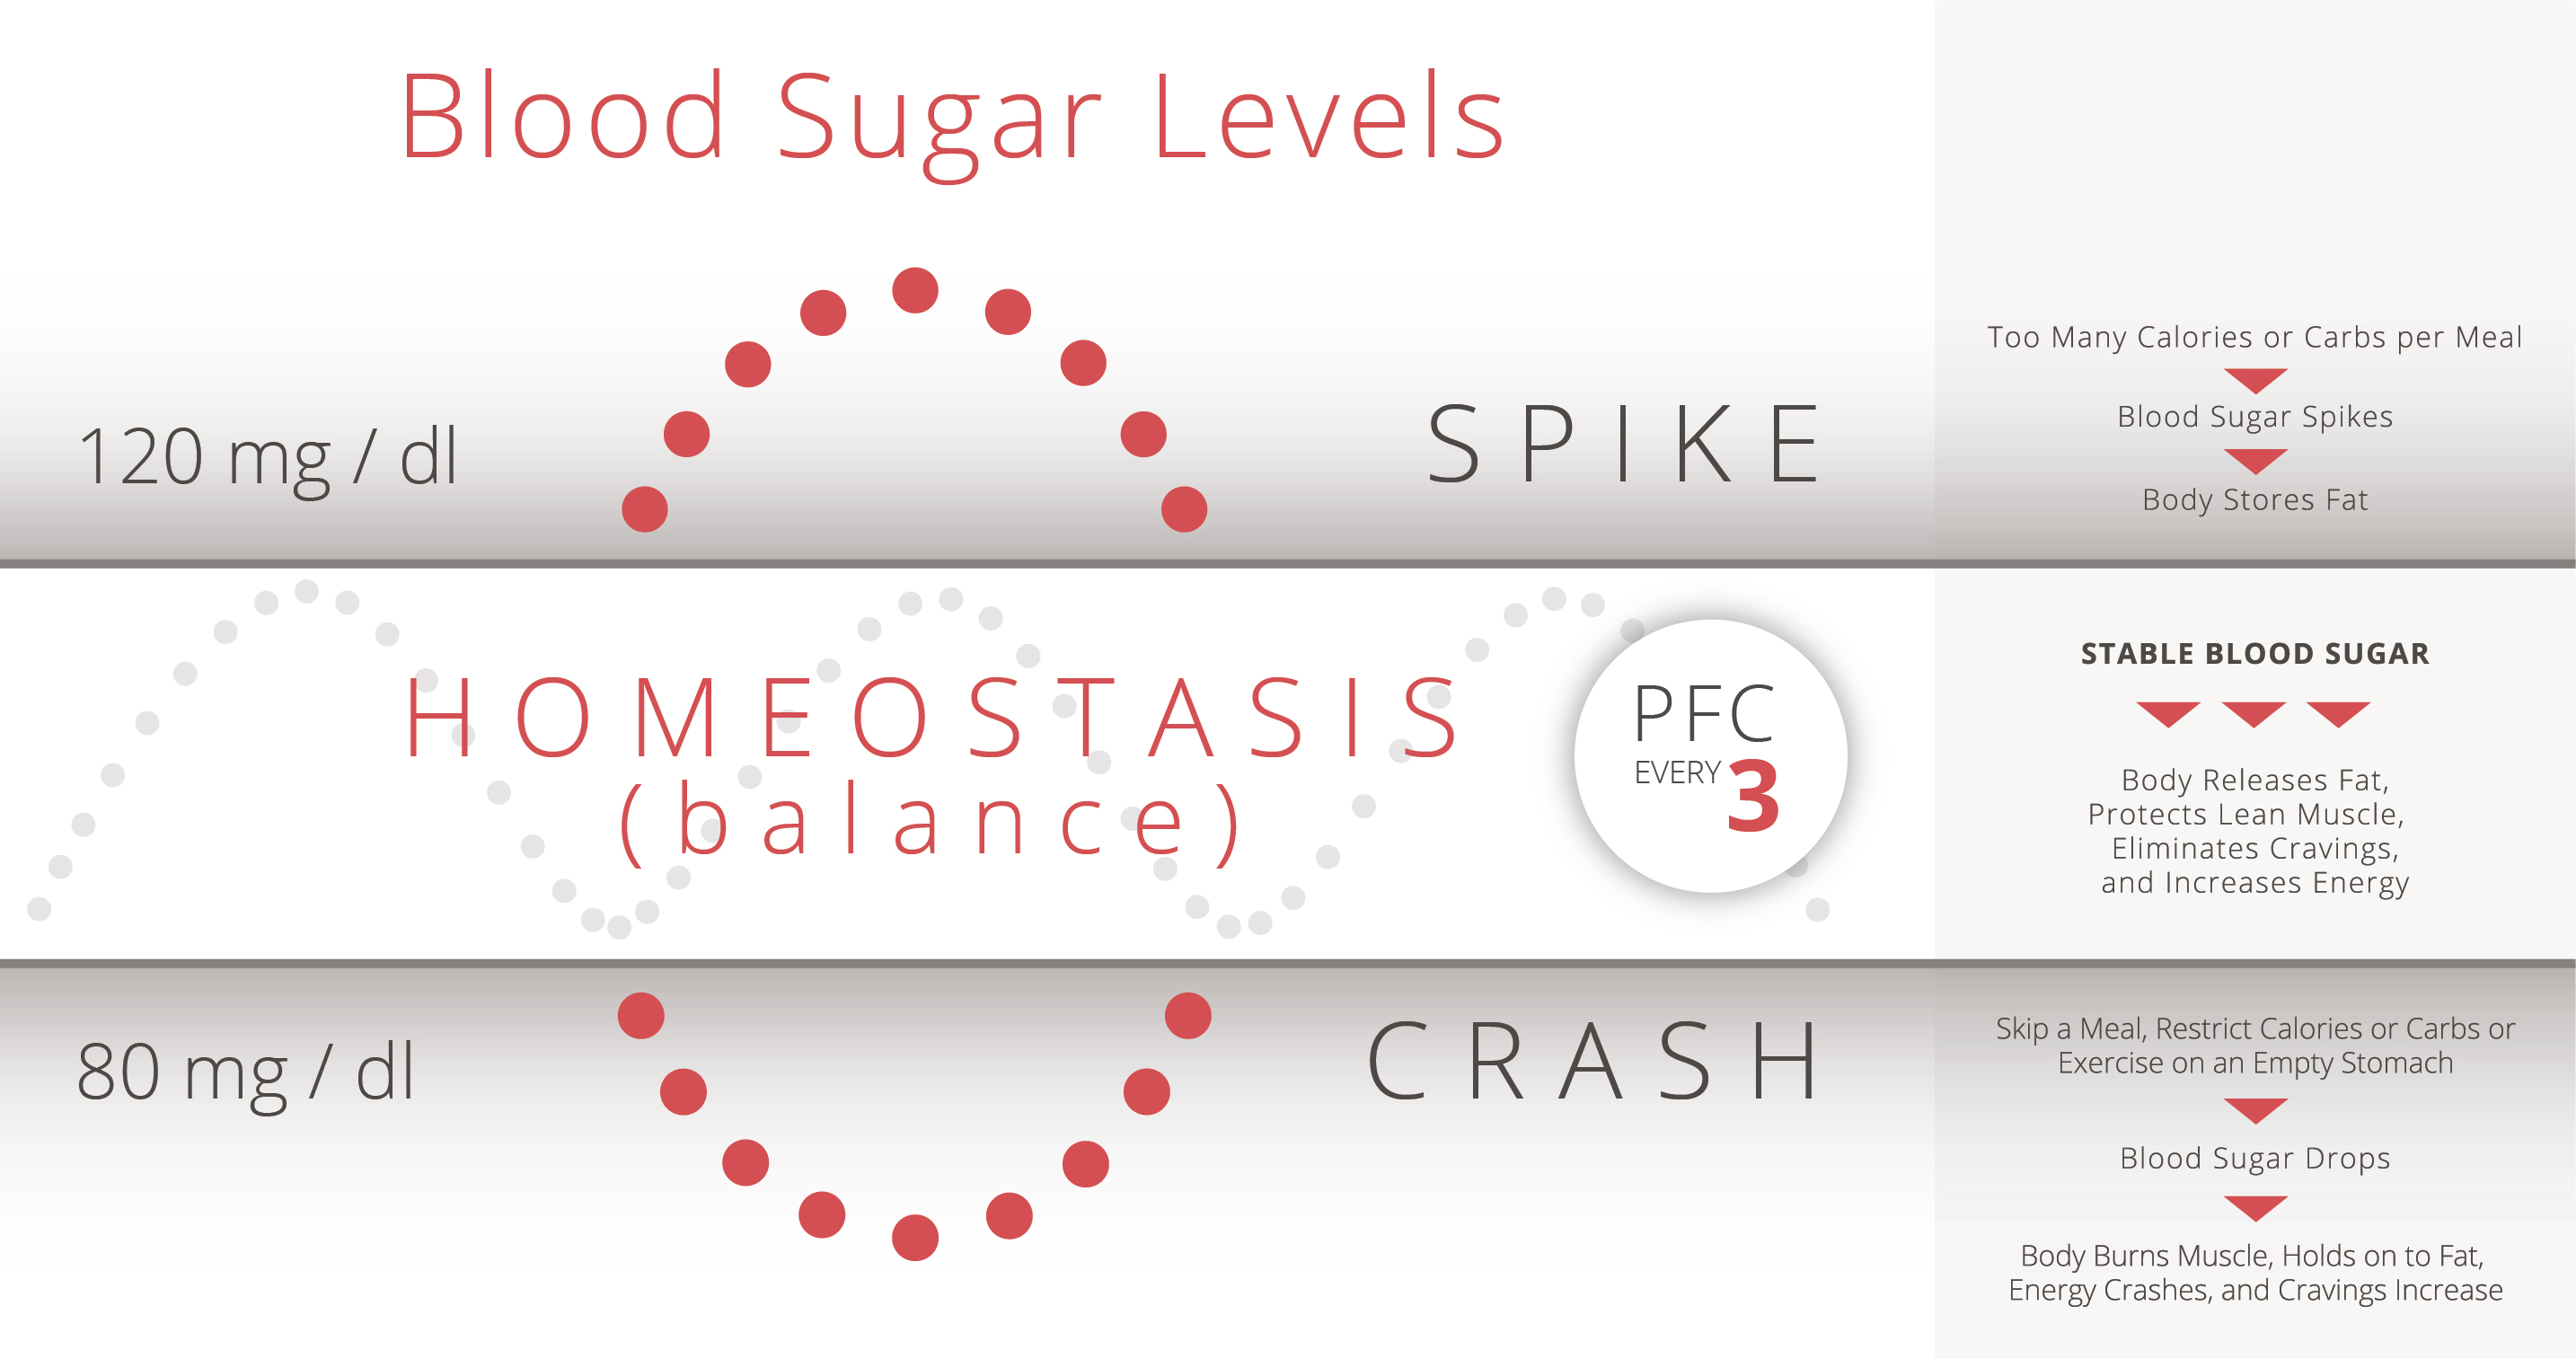 Blood Sugar Levels (maintaining homeostasis)